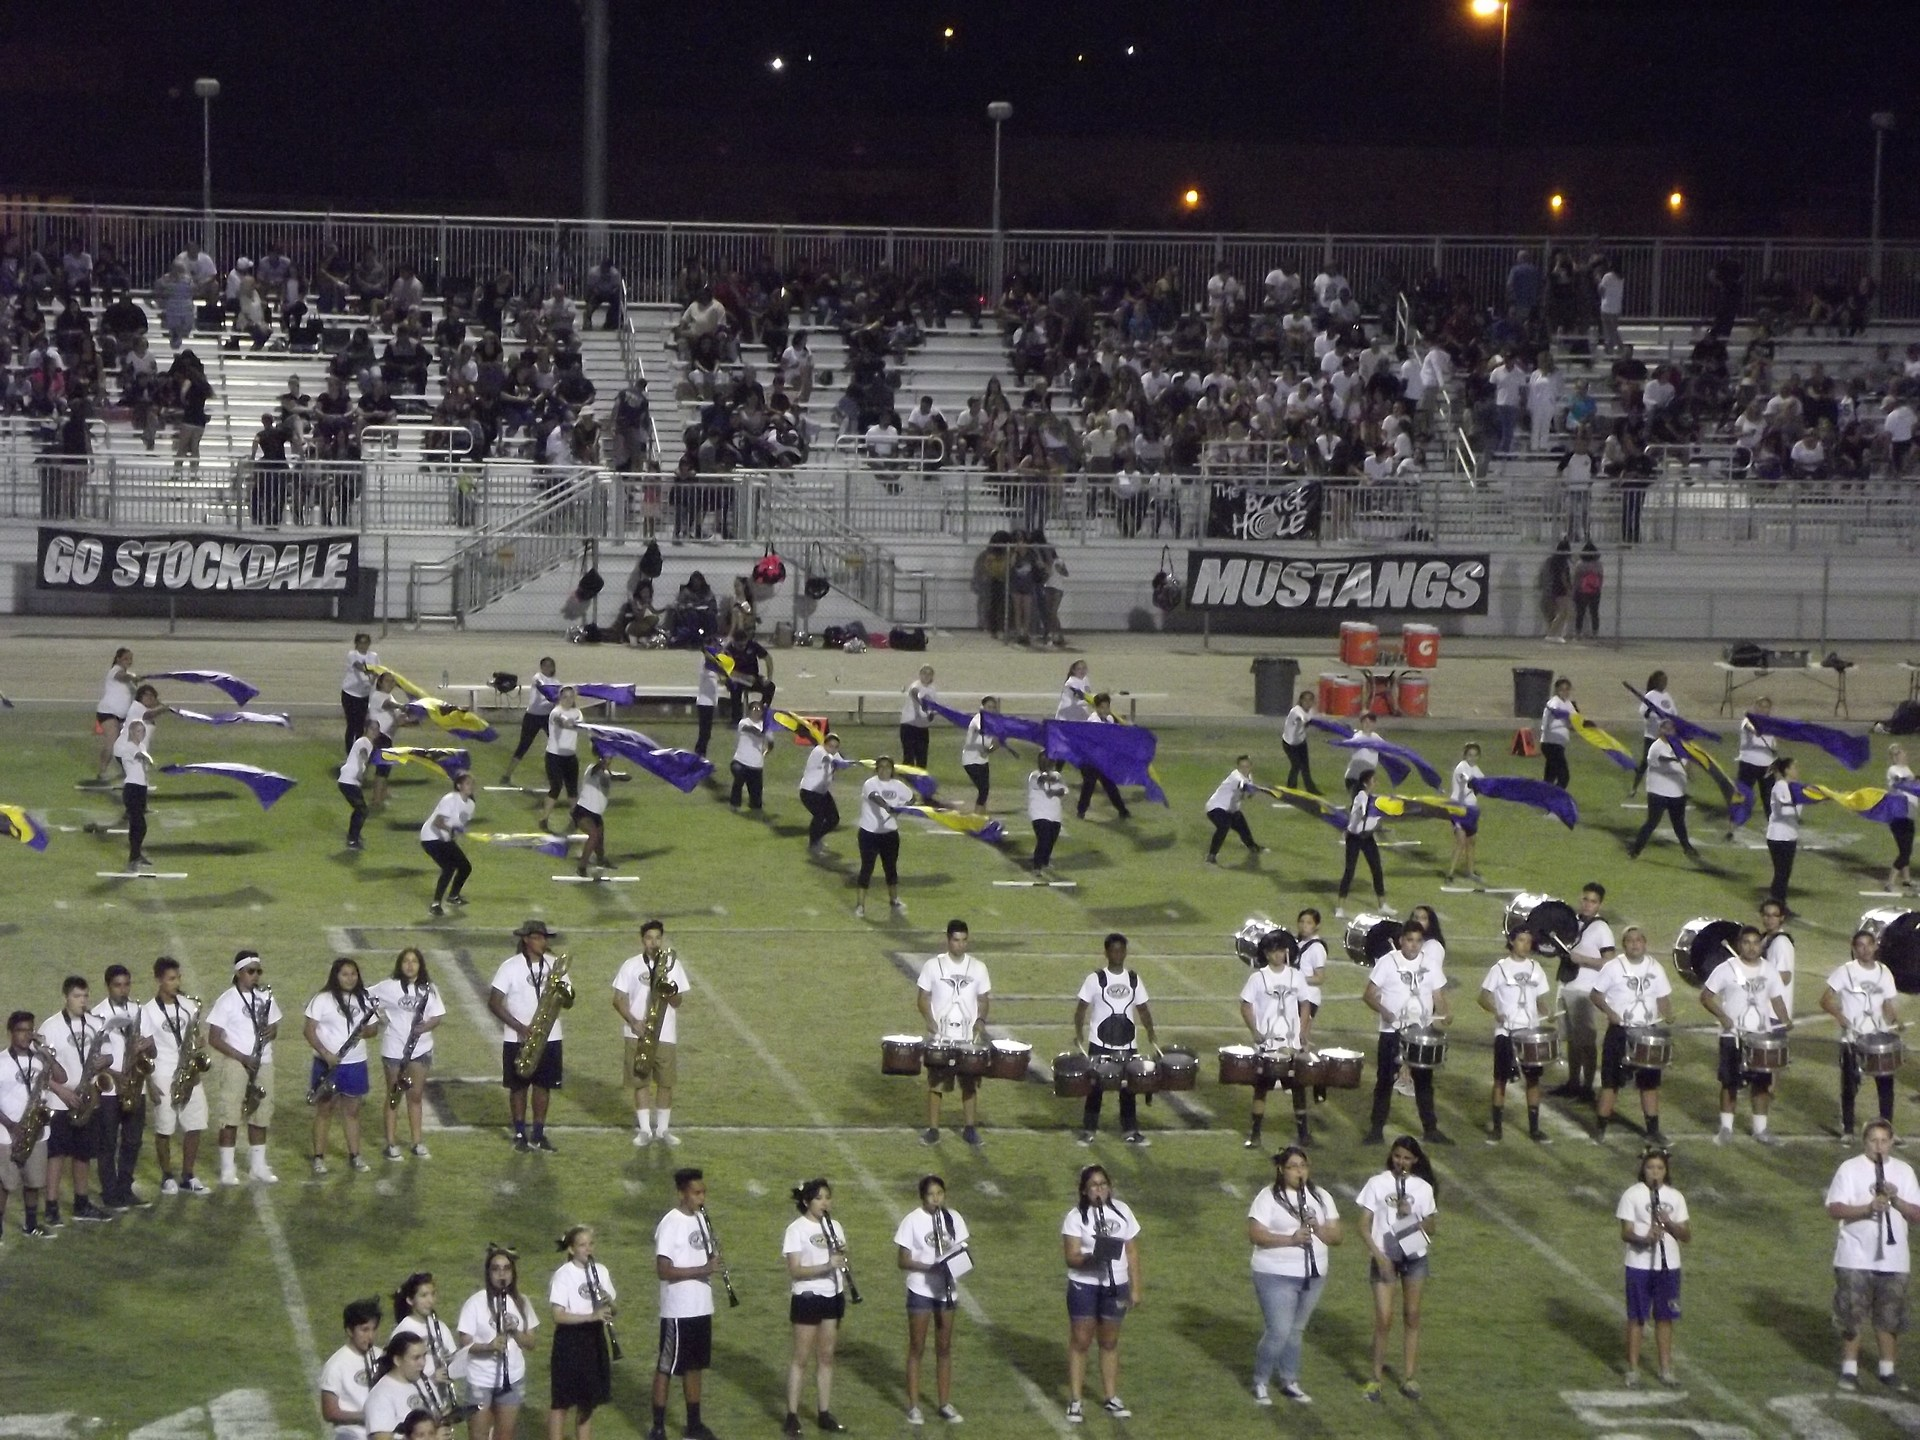 Band Picture from Stockdale Game